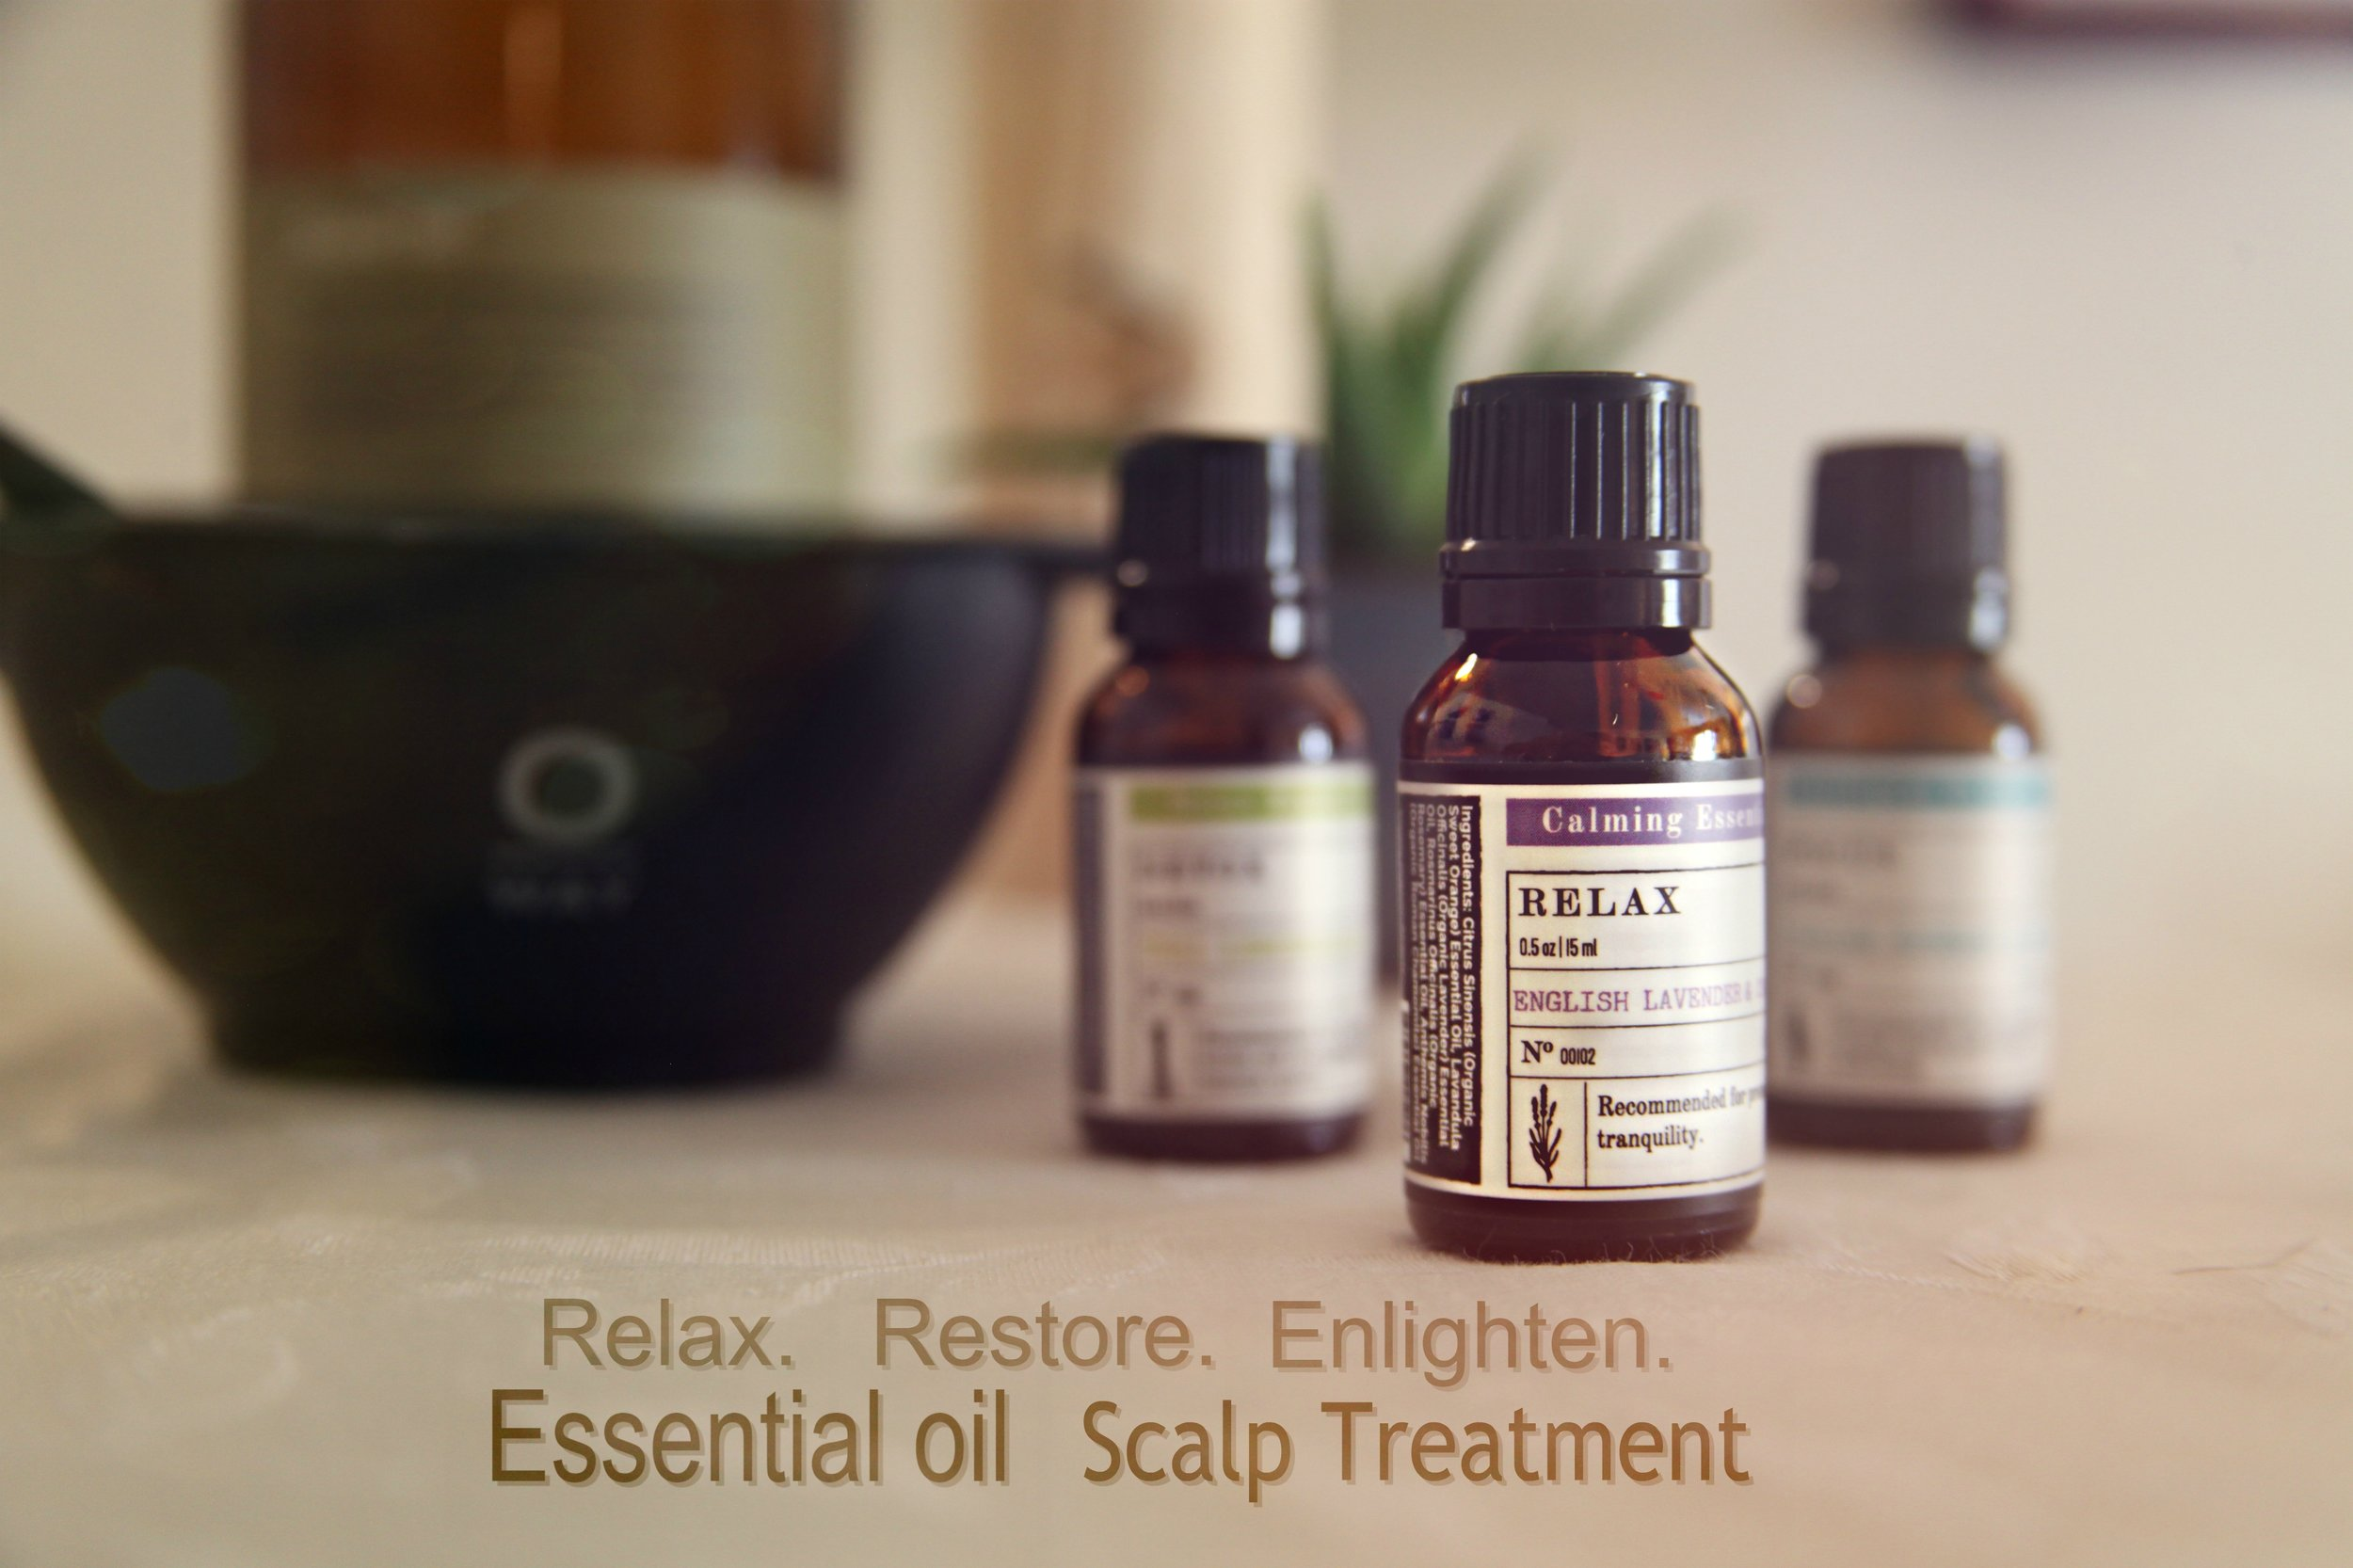 Essentialscalp oils+T.jpg